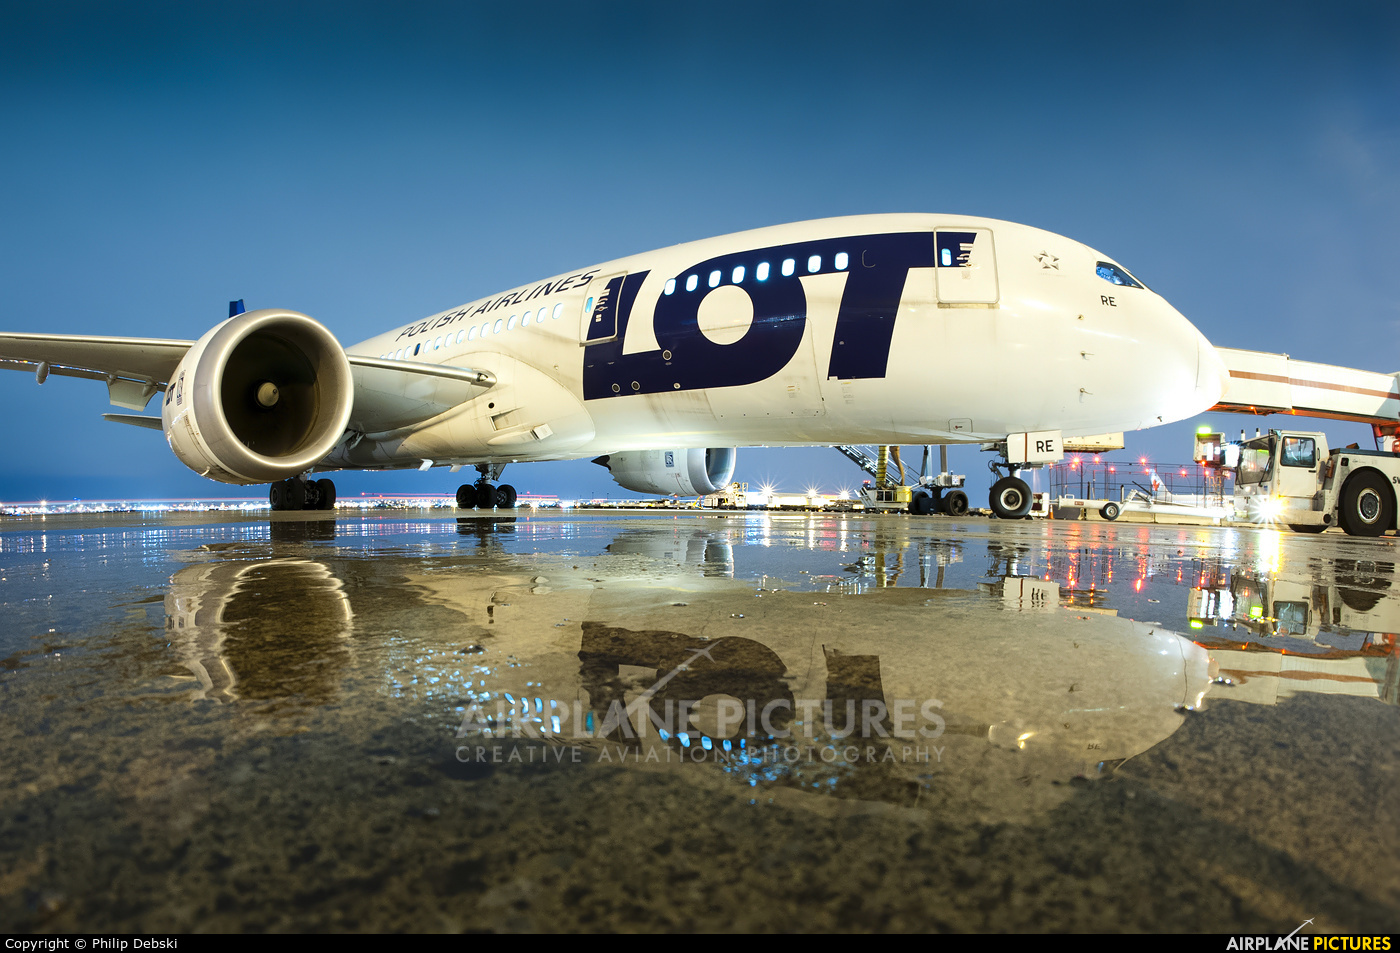 LOT - Polish Airlines SP-LRE aircraft at Toronto - Pearson Intl, ON